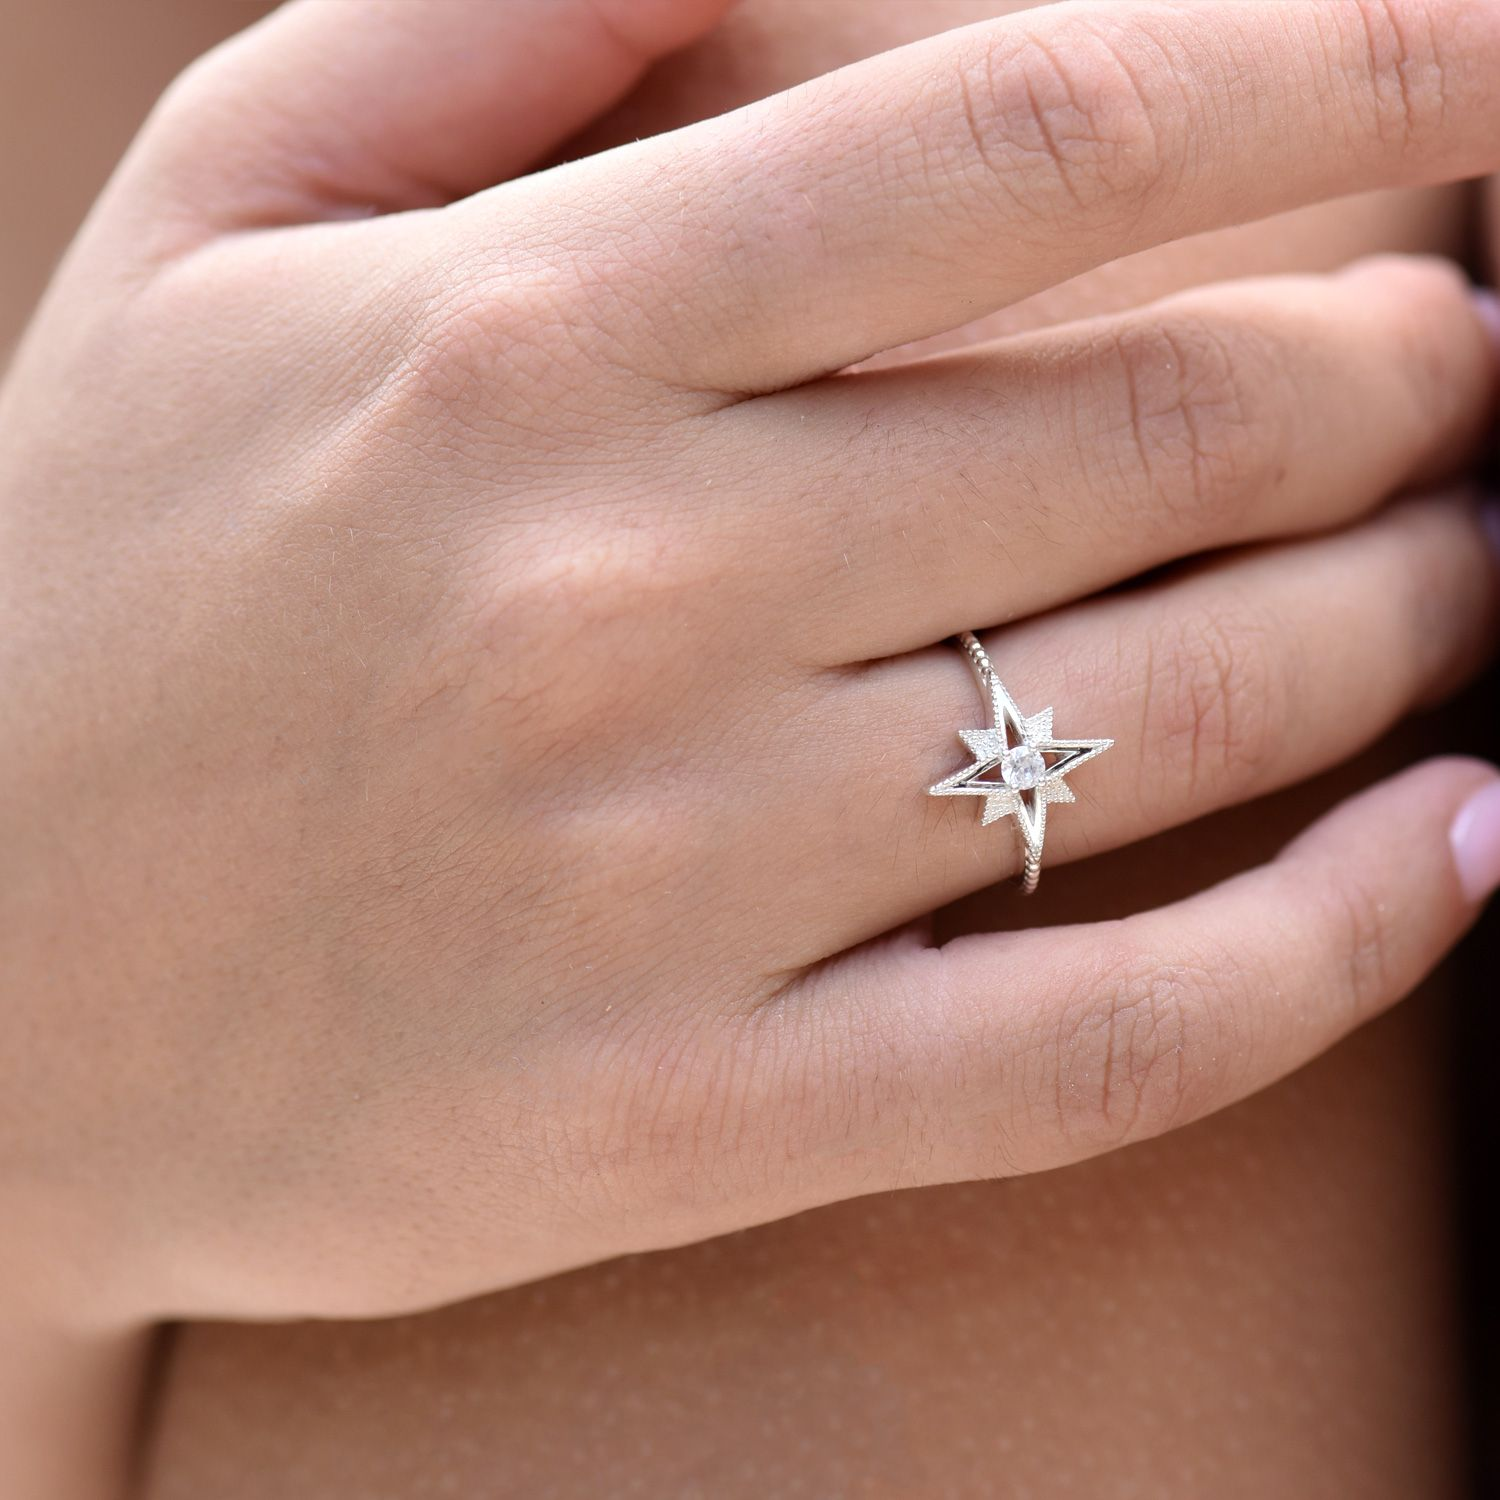 Sunbeam Ring | Zoe and Morgan Rings | Pinterest | Ring and Stone